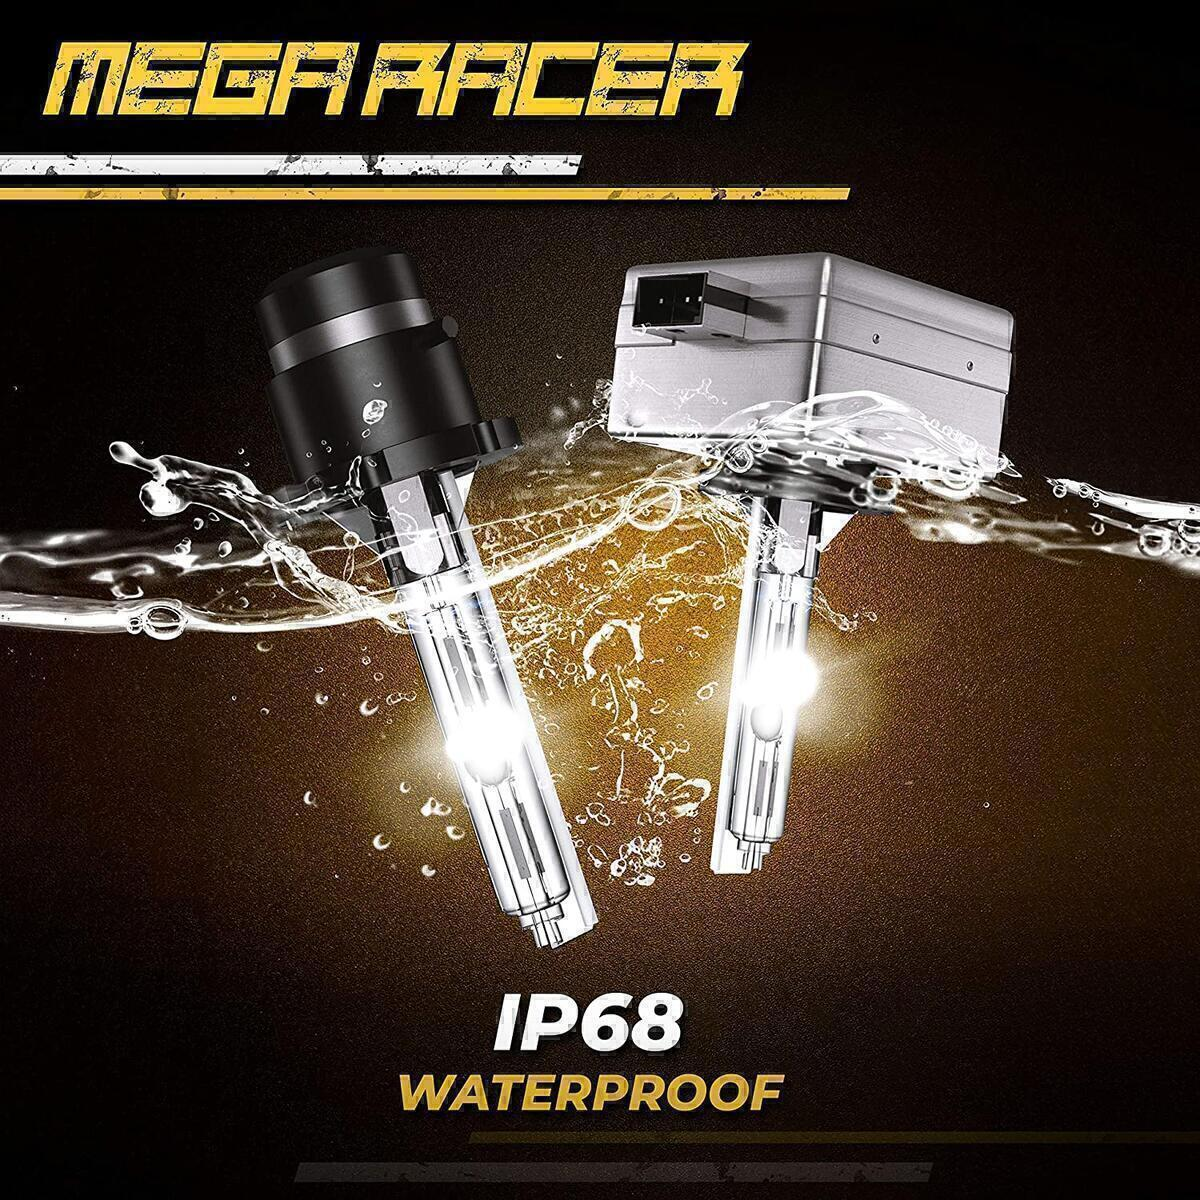 Mega Racer D2S Bulb 6000K Diamond White D2S/D2R Xenon HID Bulbs for Low Beam High Beam Replacement Bulbs, 35W 8000 Lumens Metal Stents Base 12V IP68 Waterproof, Pack of 2